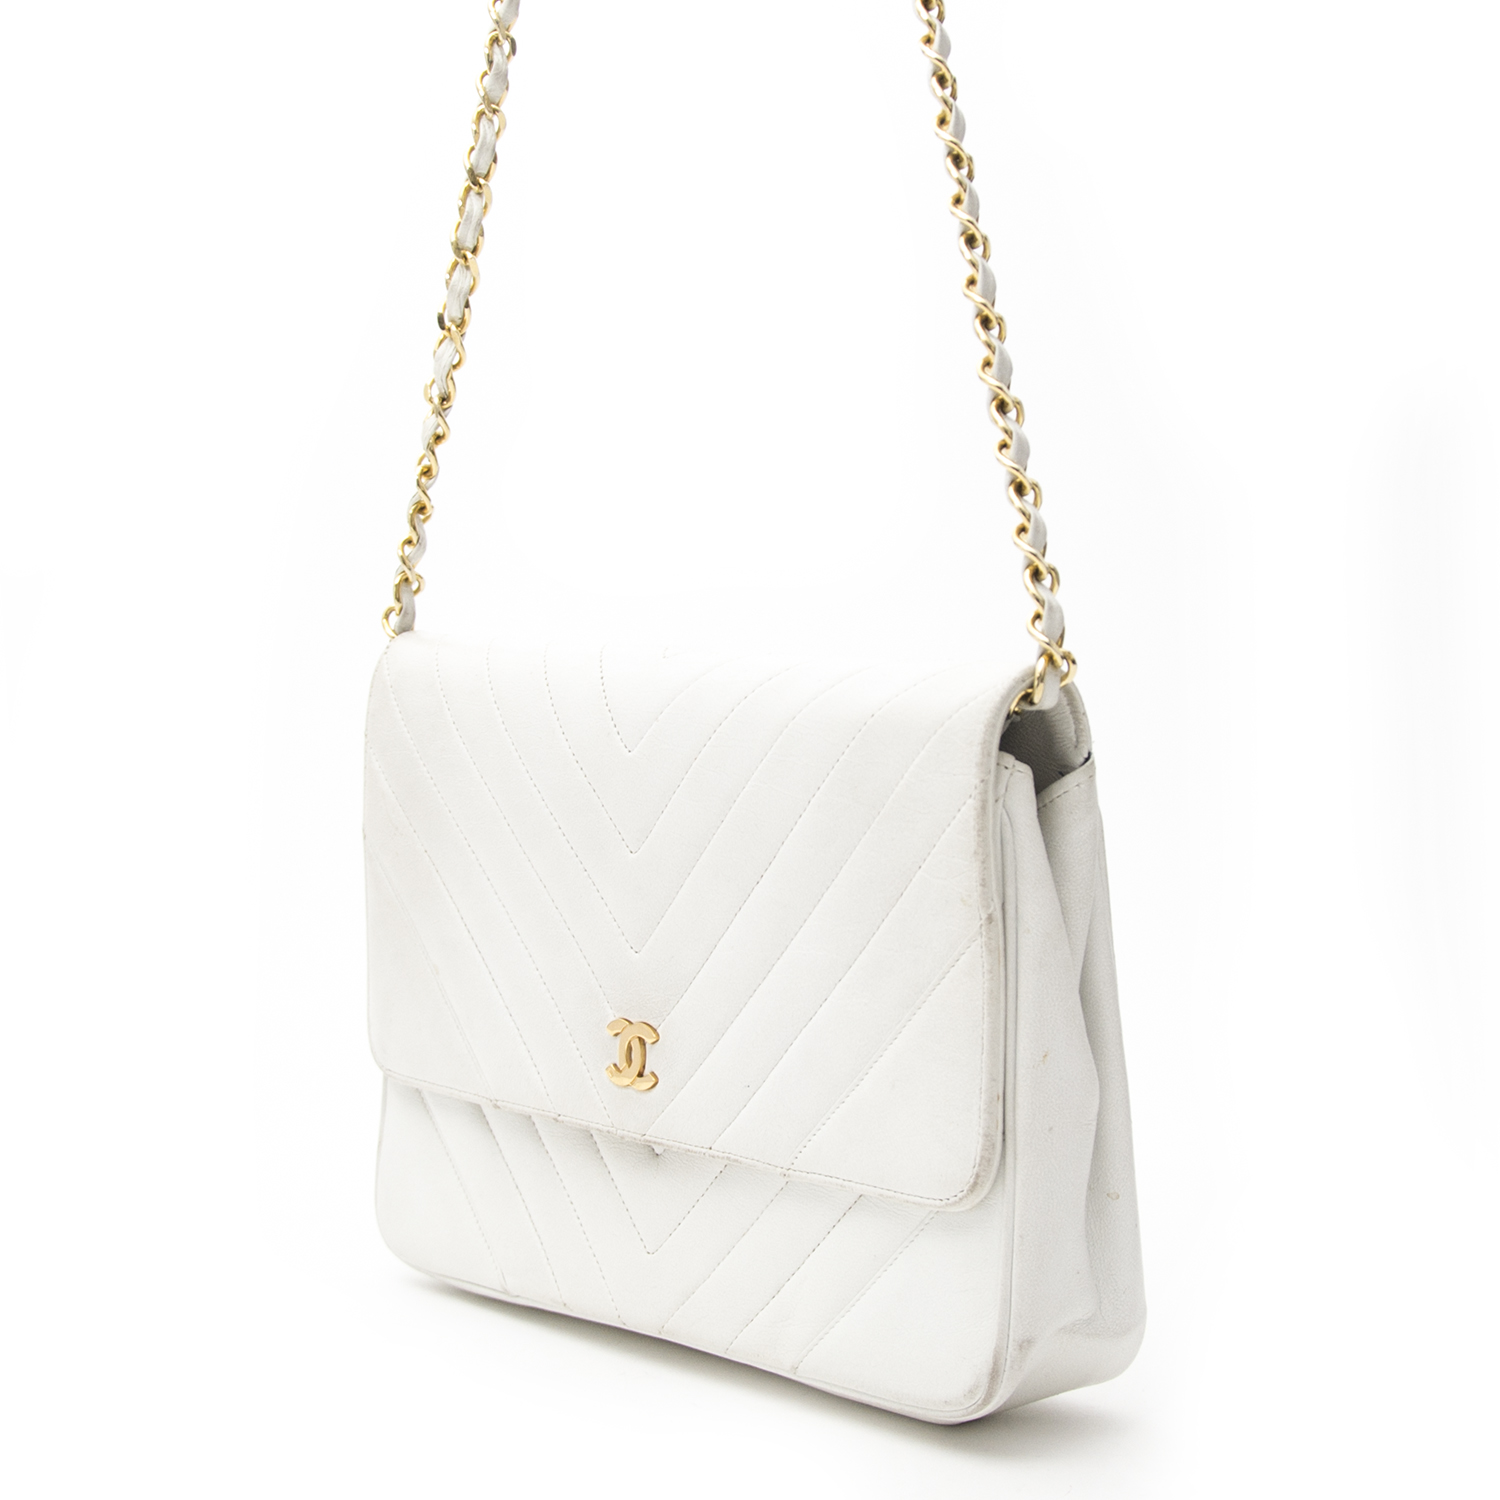 Vintage Chanel white chevron flap bag for the best price at Labellov webshop. Safe and secure online shopping with 100% authenticity. Vintage Chanel blanc chevron sac à bandoulière pour le meilleur prix.